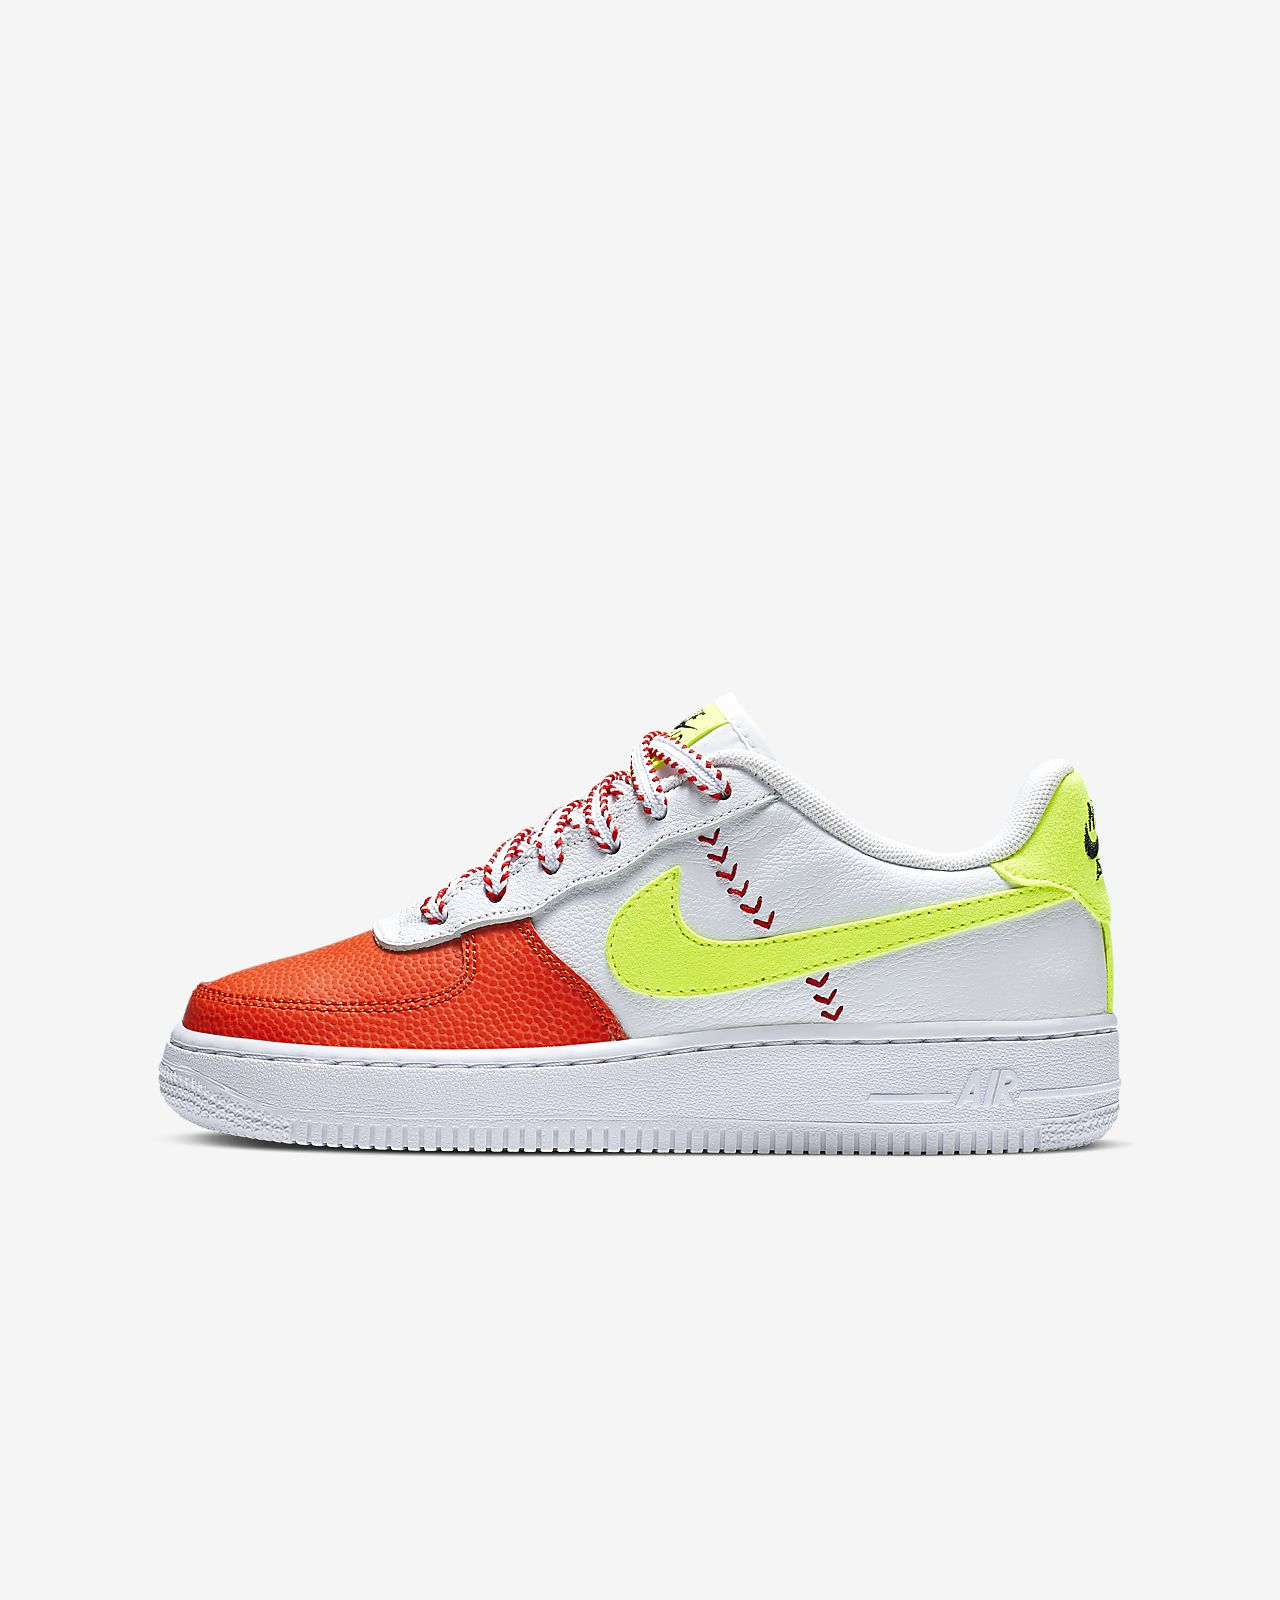 95597bab2e3 Nike Air Force 1 LV8 SPRB Big Kids  Shoe. Nike.com